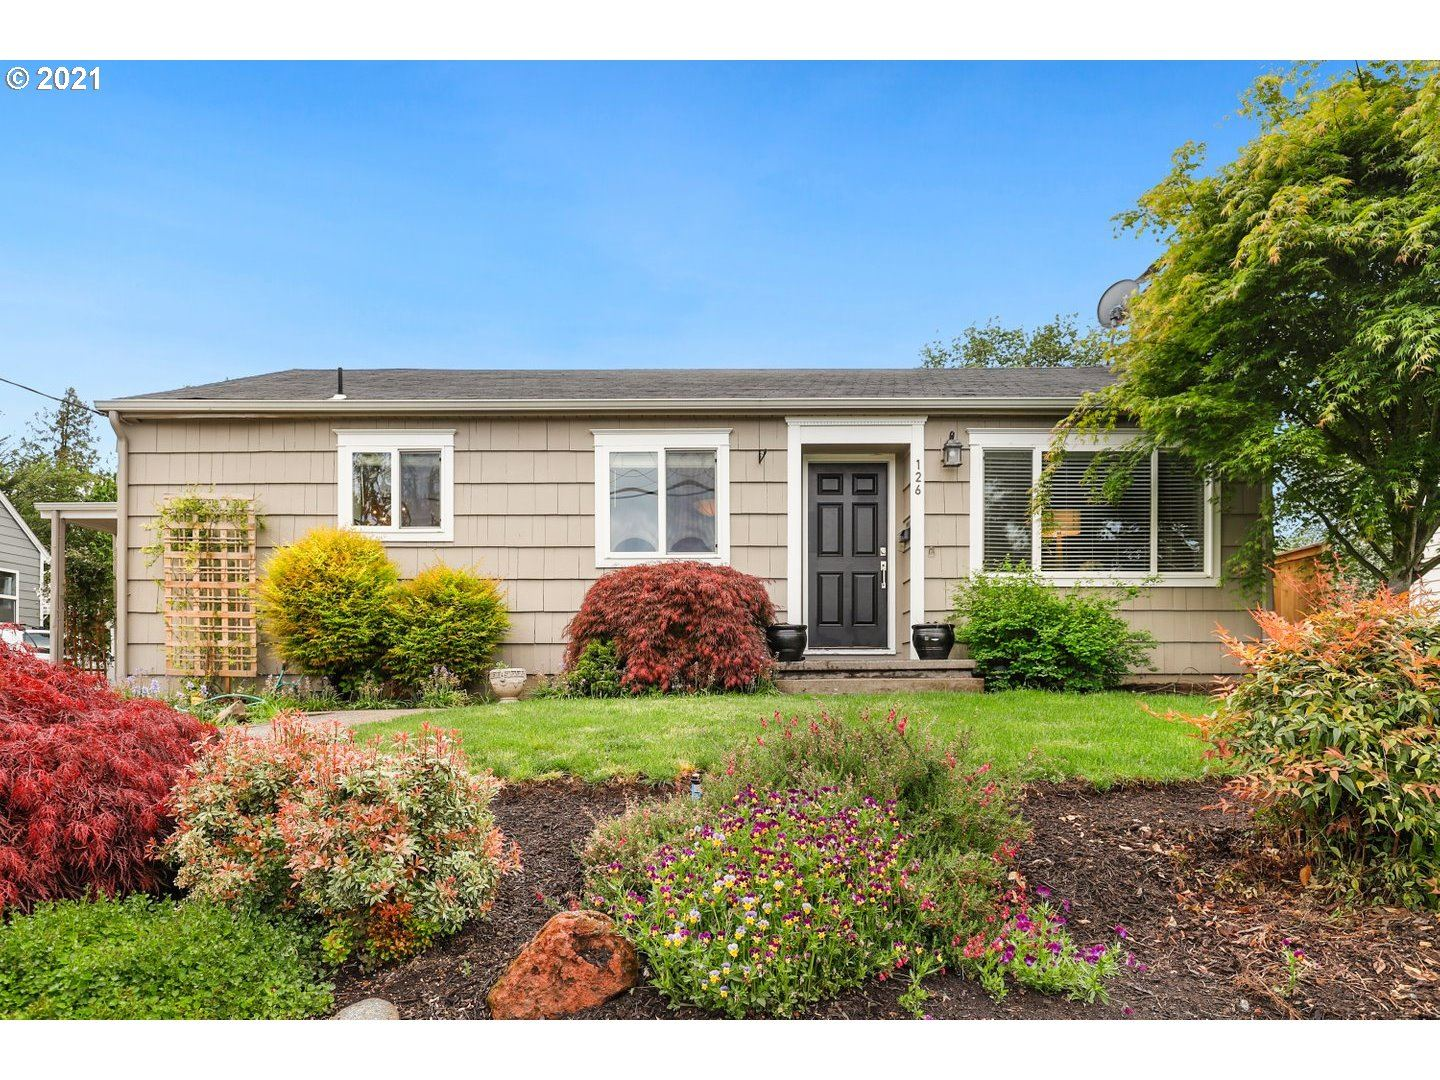 126 NE 73RD AVE, Portland, OR 97213 - MLS#: 20272848